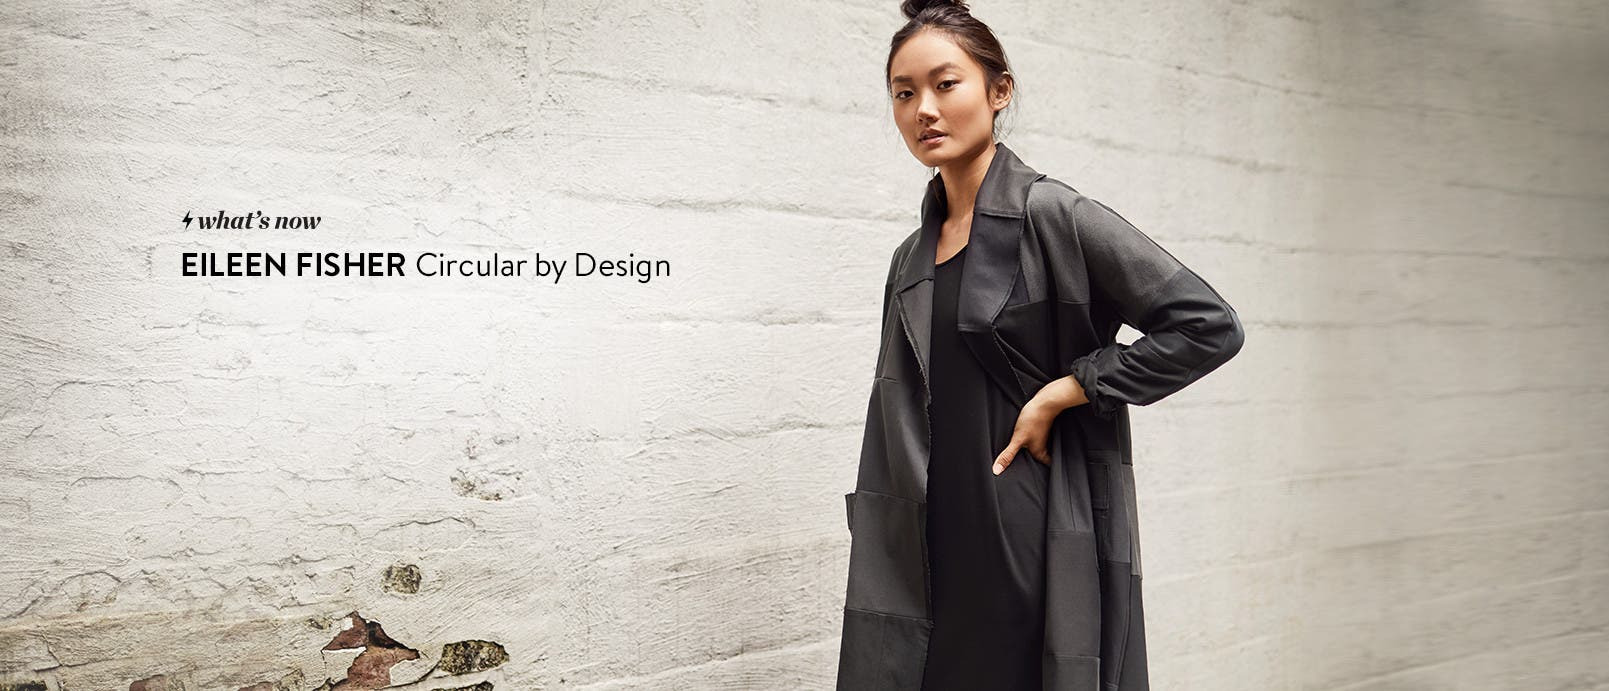 Eileen Fisher Renew collection.